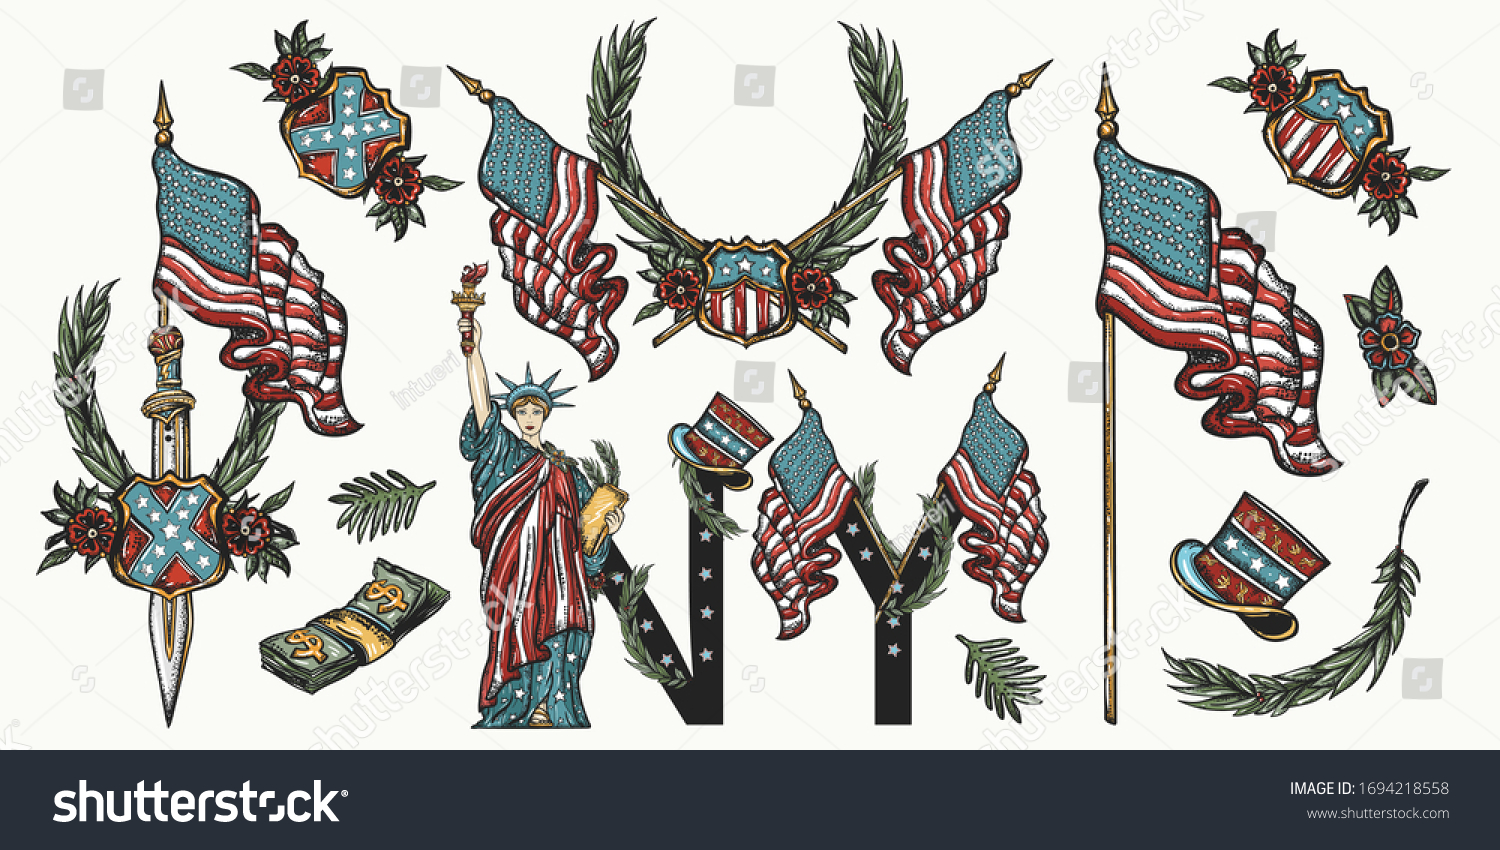 United States America Patriotic Set Traditional Stock Vector Royalty Free 1694218558